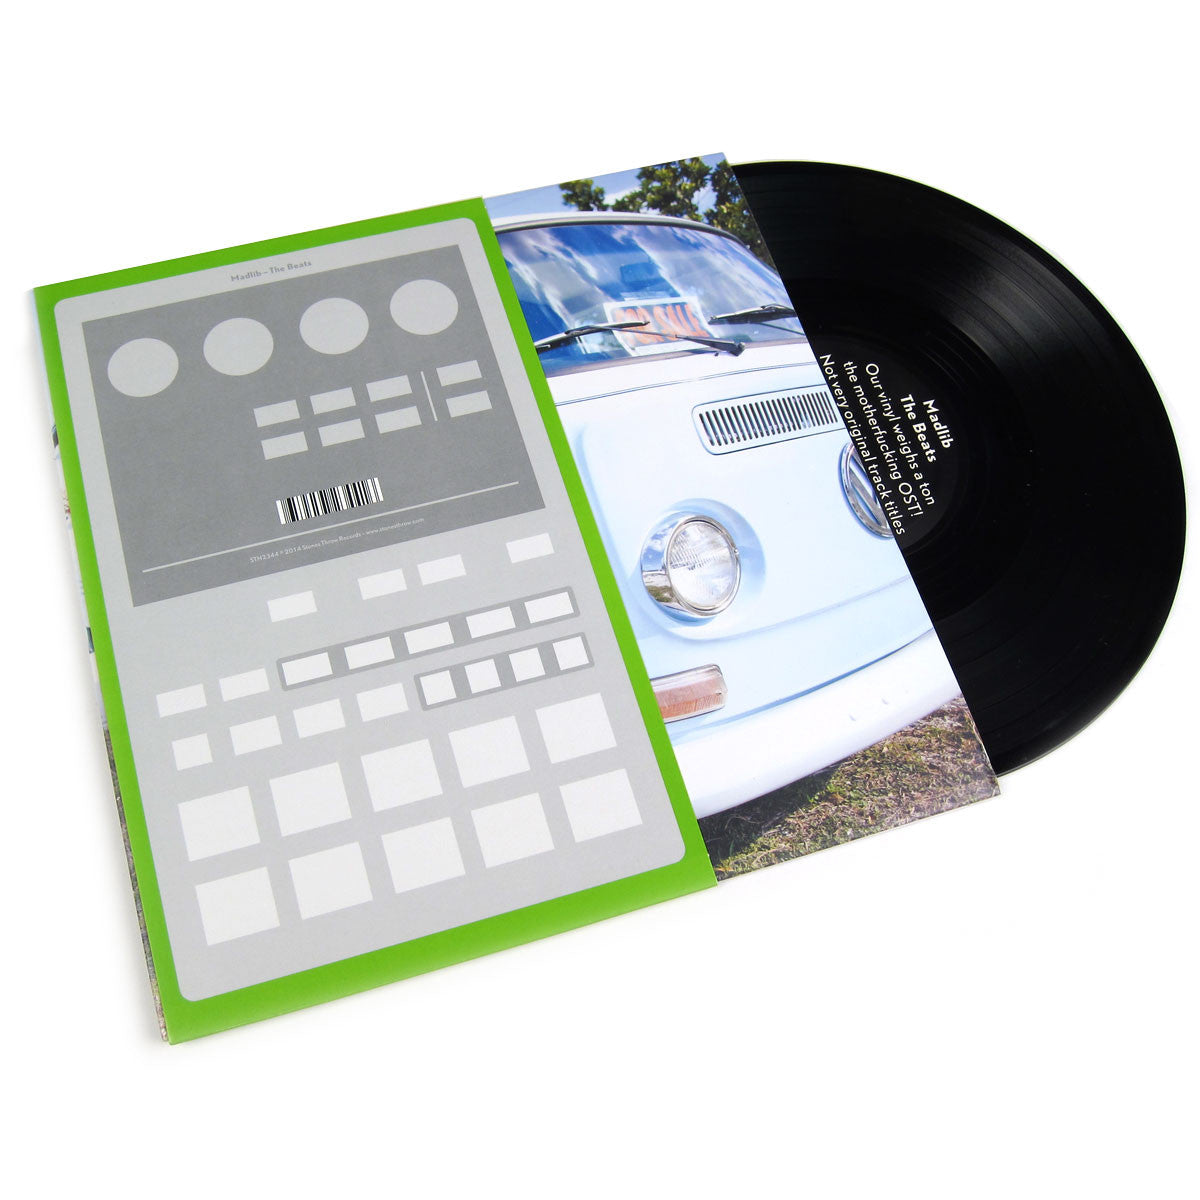 Madlib: The Beats - Our Vinyl Weighs A Ton OST (Free MP3) Vinyl 10""